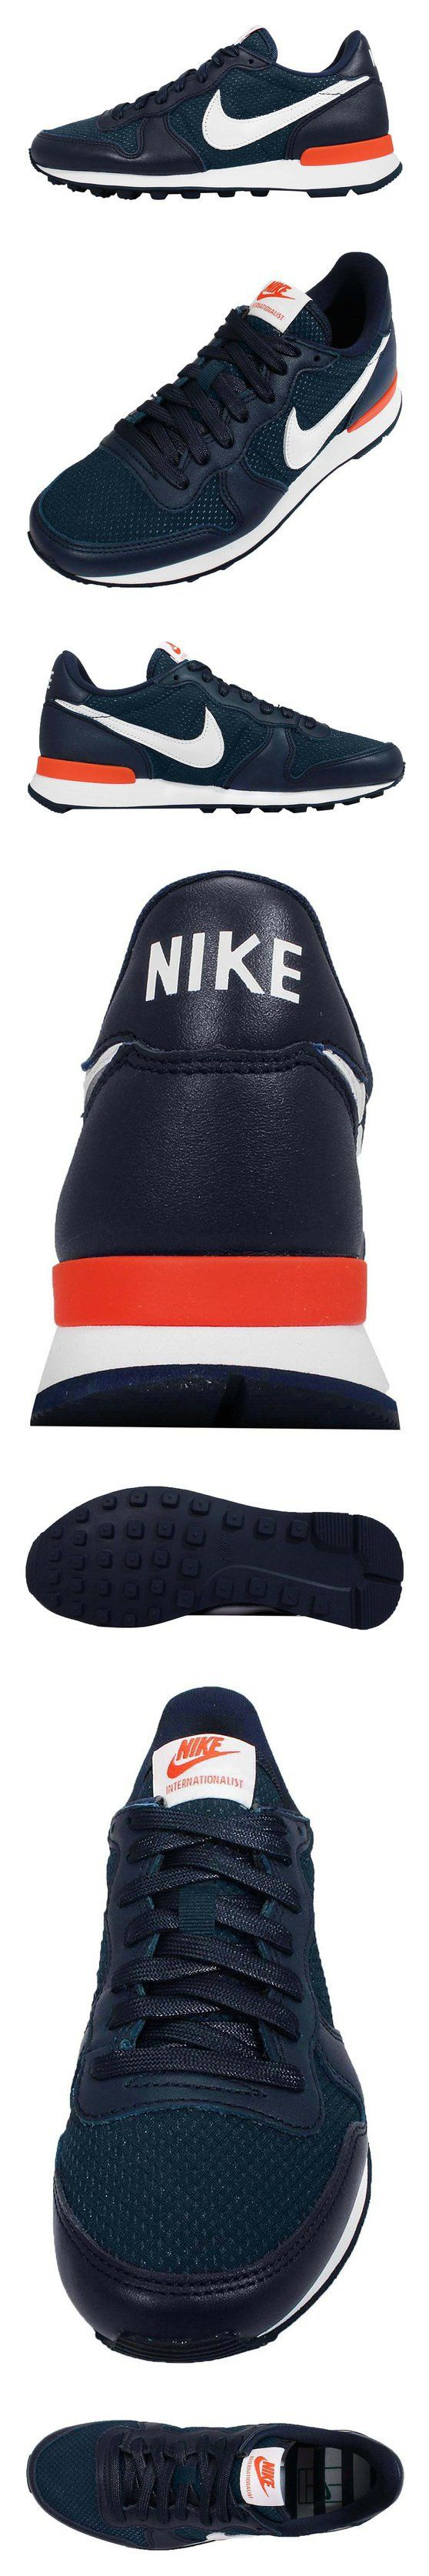 $129.9 - Nike Women's Wmns Internationalist FO QS   FRENCH OPEN-MIDNIGHT NAVY/WHITE-TEAM ORANGE #shoes #nike #2015